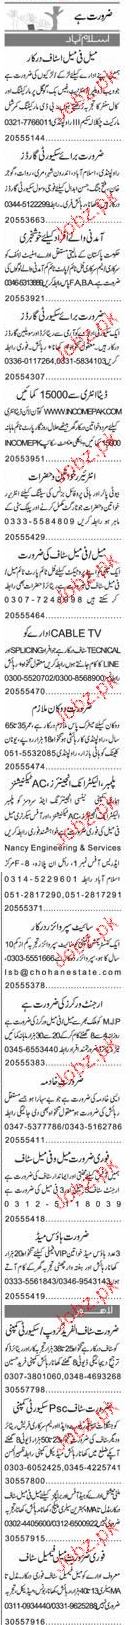 AC Technicians, Electronic Engineers Job Opportunity